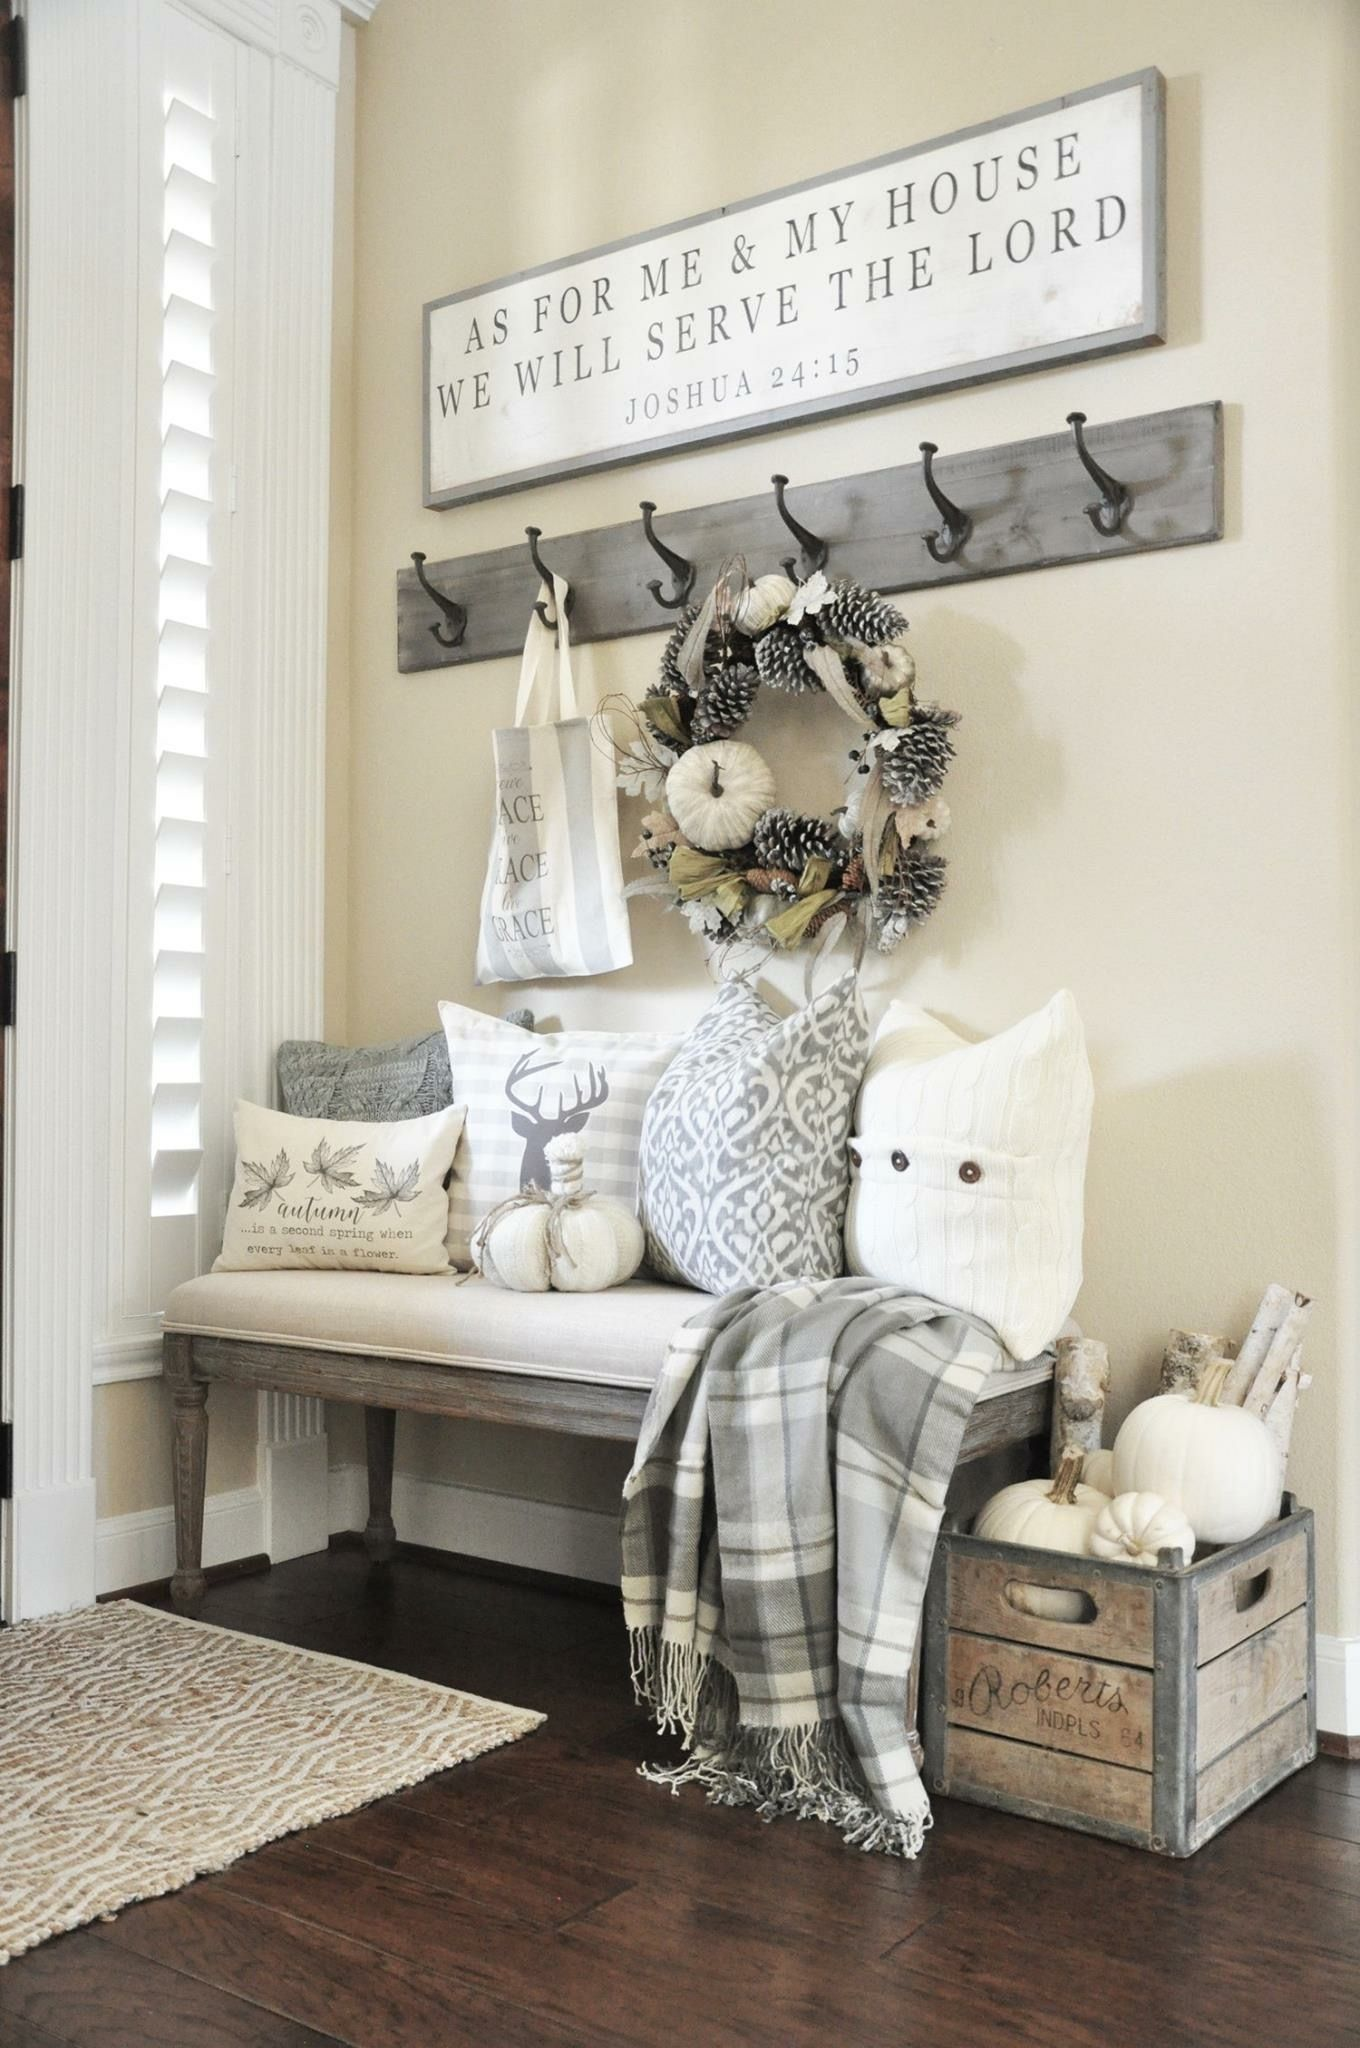 adorable entryway benche with storages | Mud room, entry room, cute shabby chic decor, rustic style ...